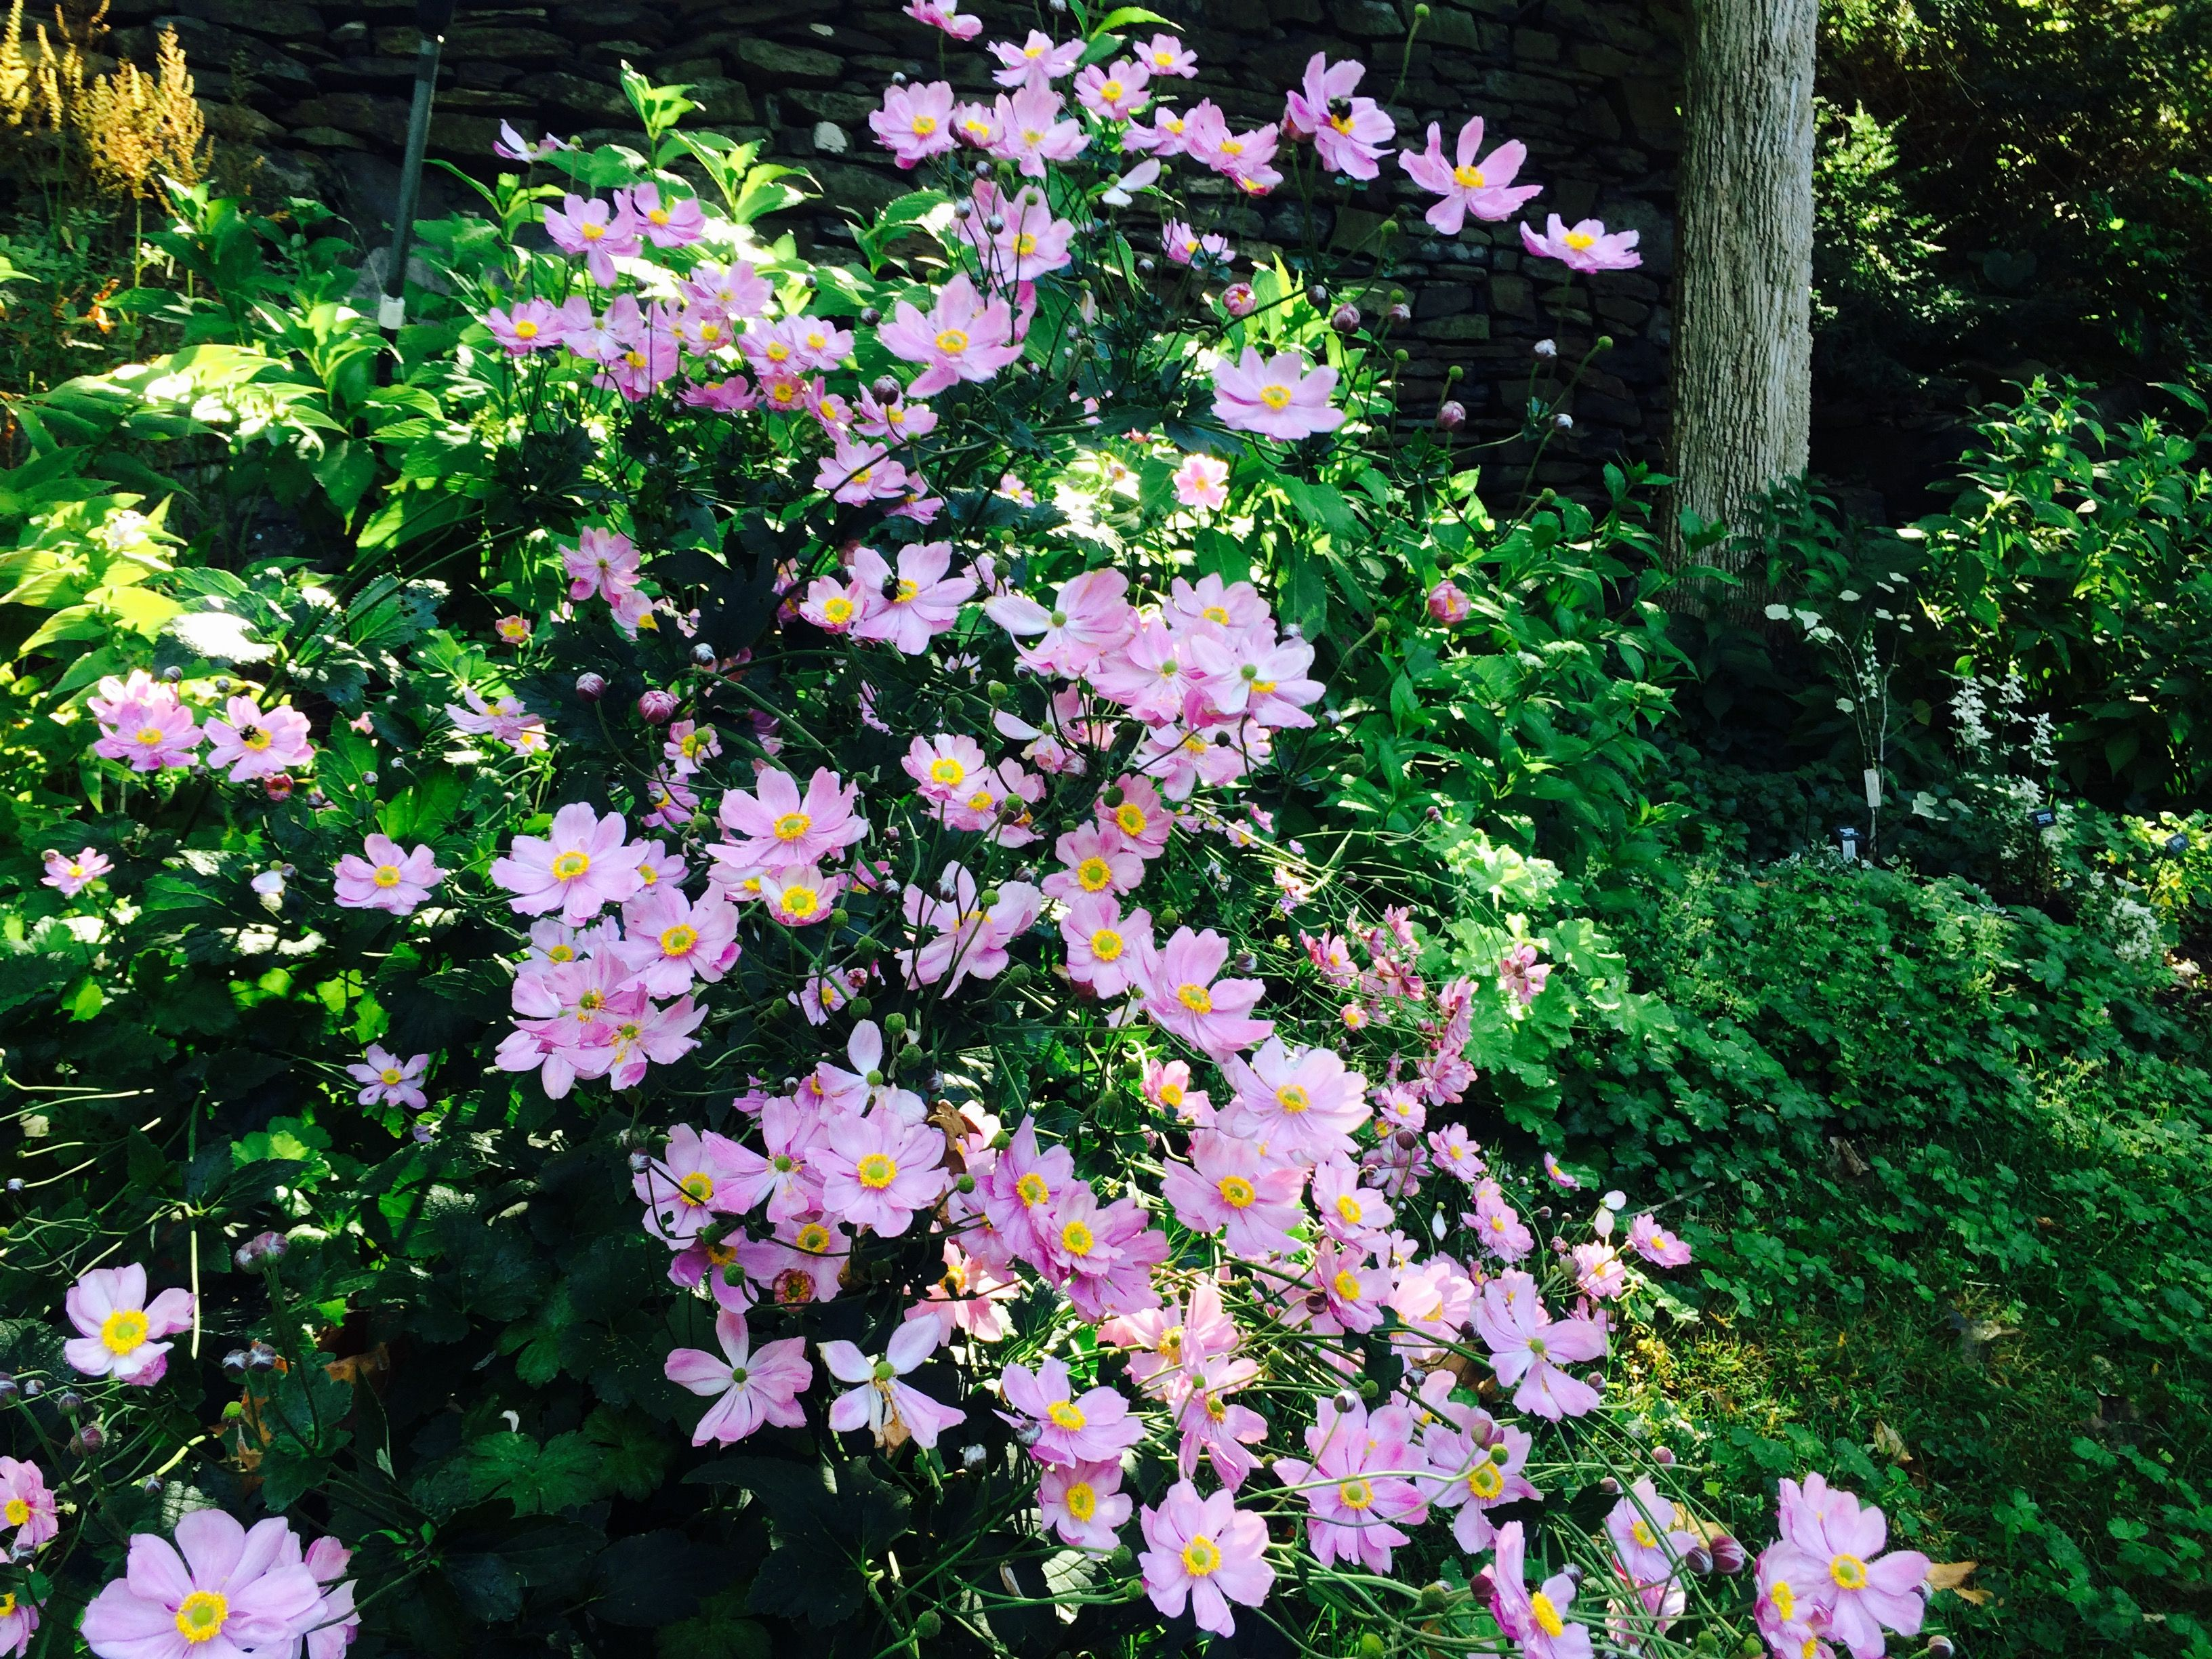 Anemone Hybrida September Charm Offers A Canopy Of Pink Blossoms In September With Images Pink Blossom Garden